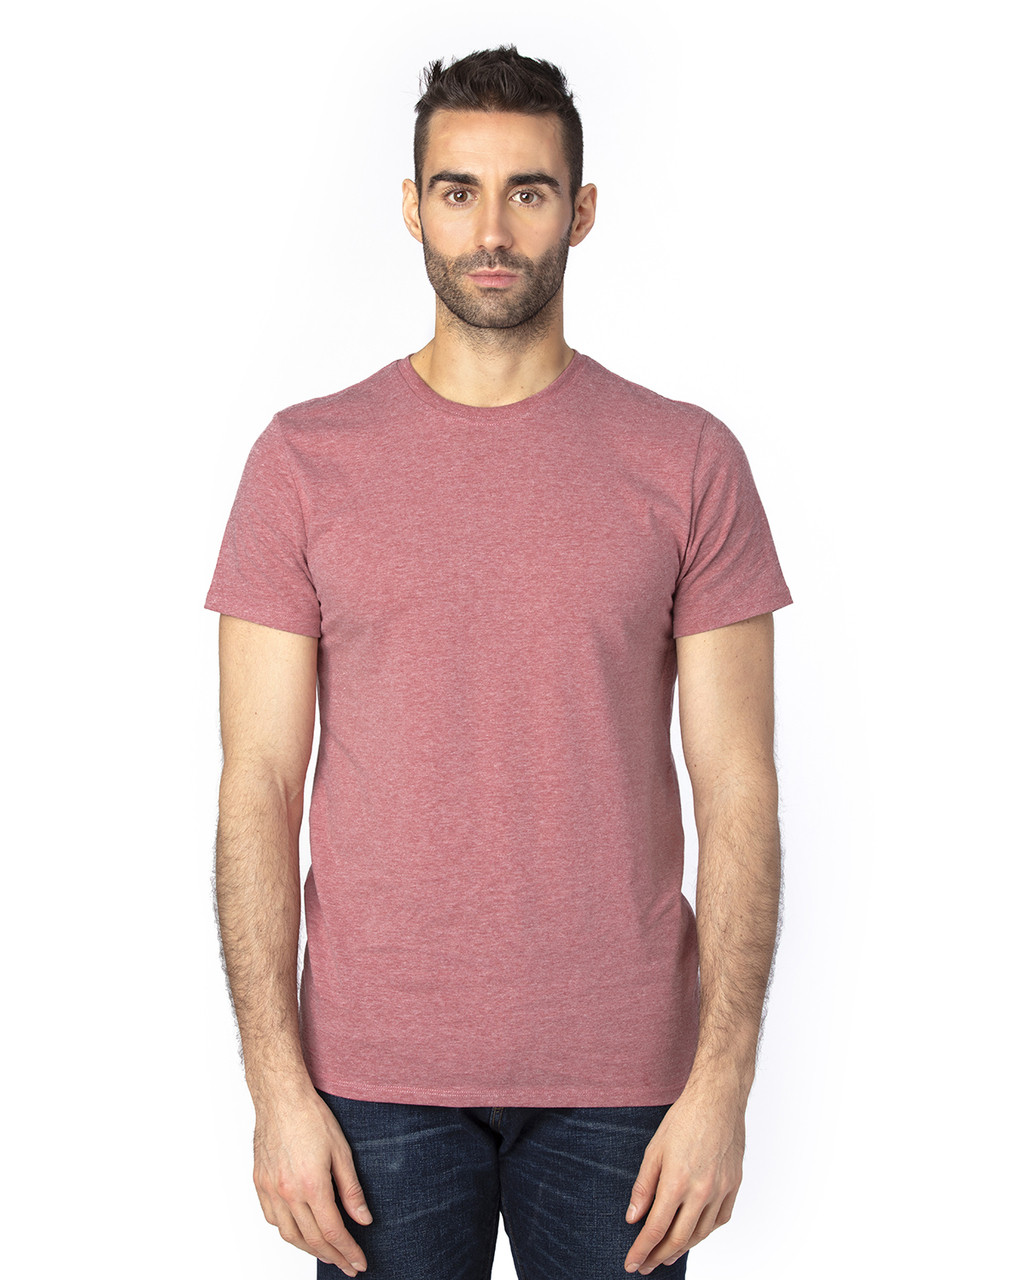 Maroon Heather - 100A Threadfast Unisex Ultimate Short-Sleeve T-Shirt | BlankClothing.ca